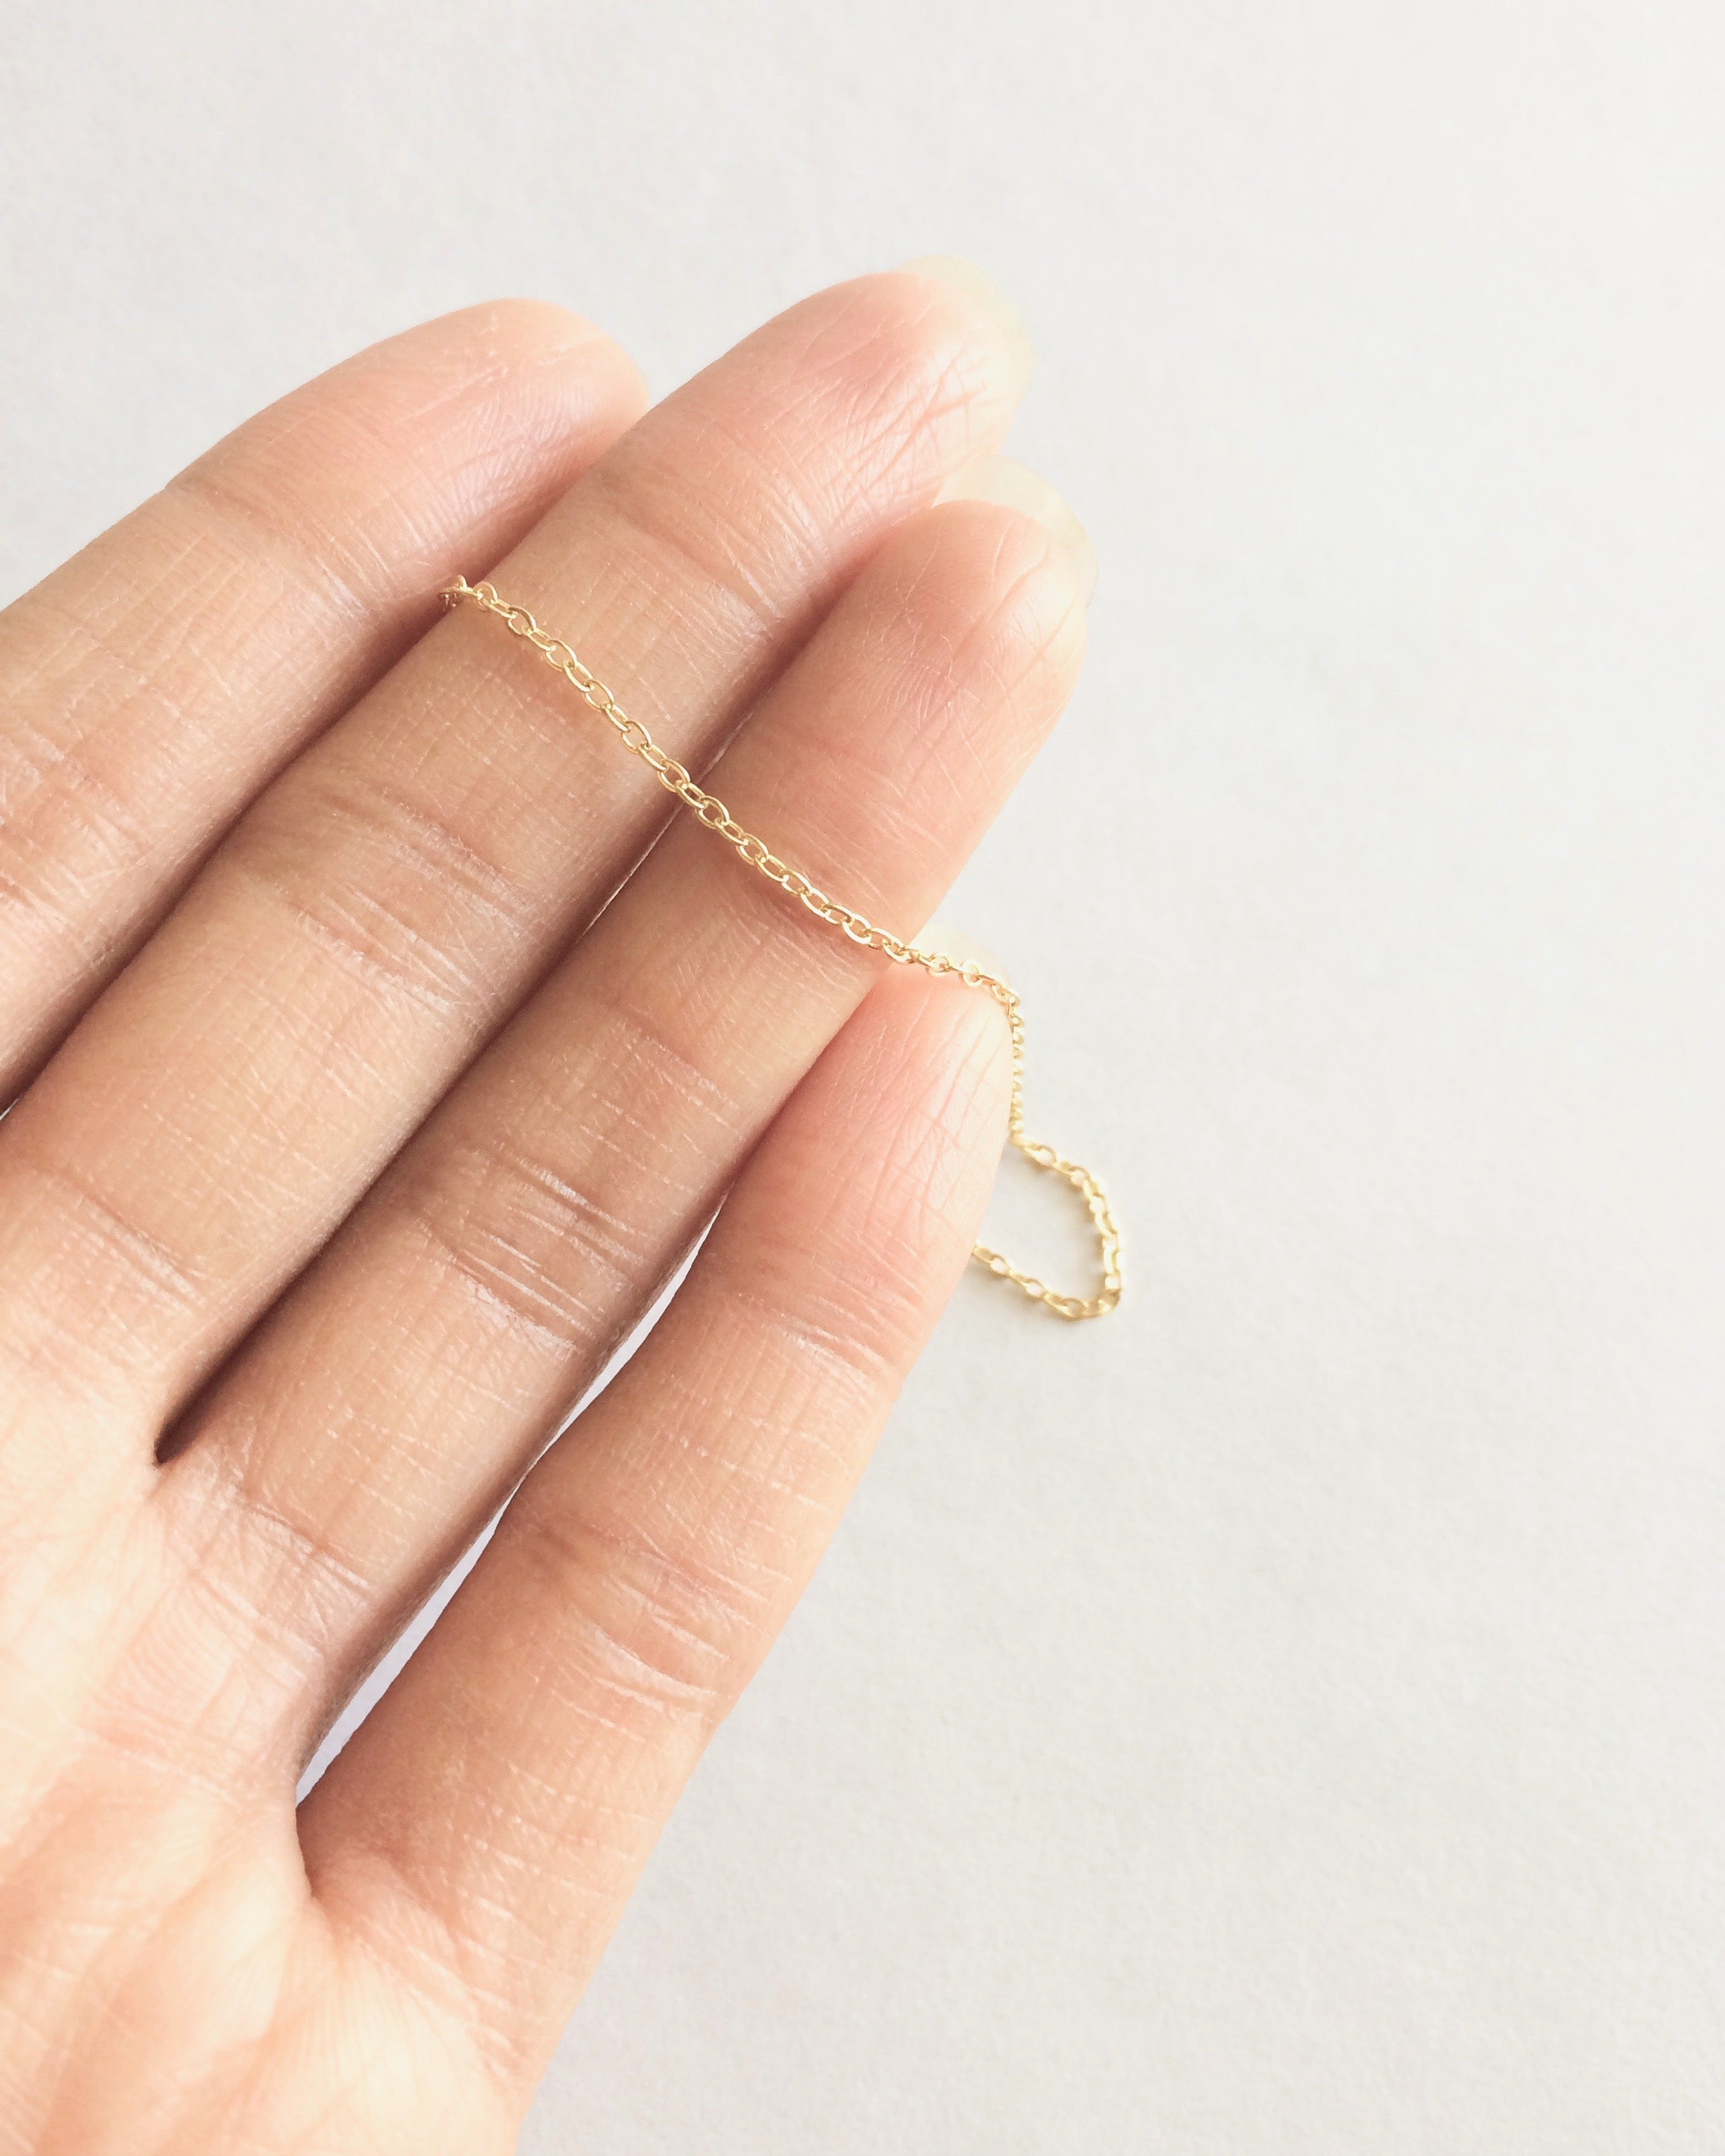 Minimalist Delicate Plain Thin Chain Bracelet in Gold Filled or Sterling Silver | IB Jewelry